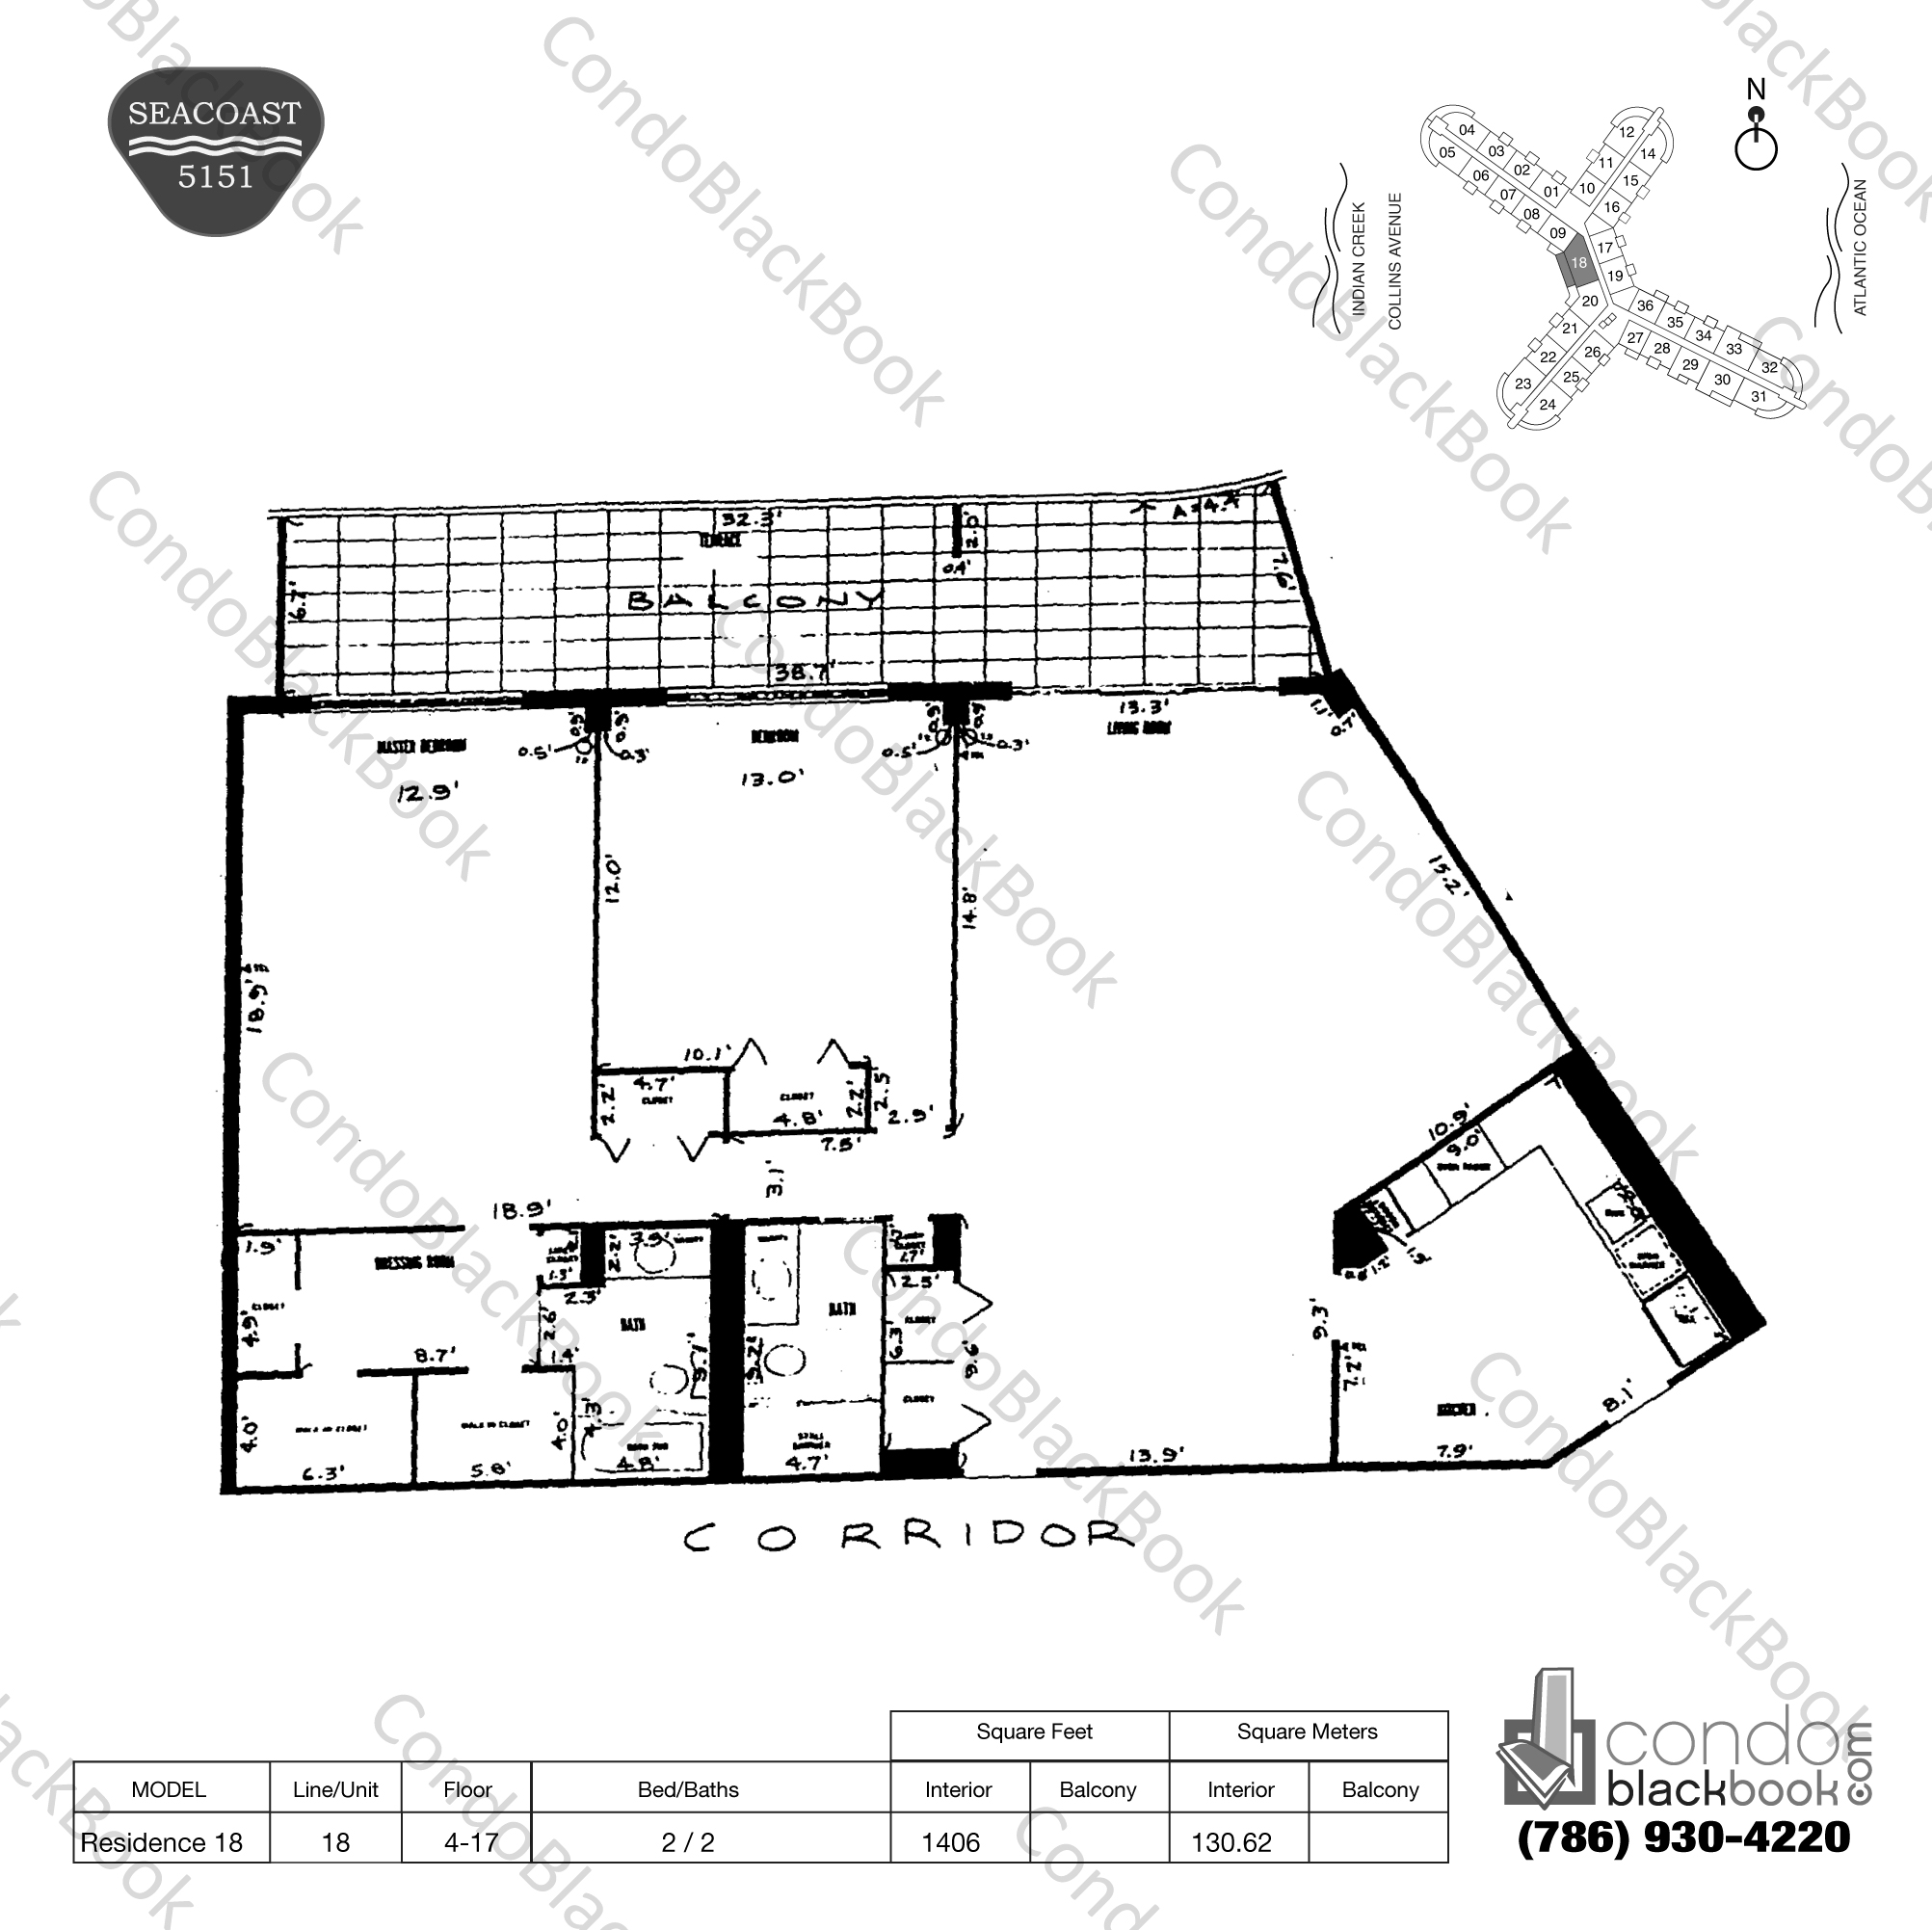 Floor plan for Seacoast 5151 Mid-Beach Miami Beach, model Residence 18, line 18, 2 / 2 bedrooms, 1406 sq ft